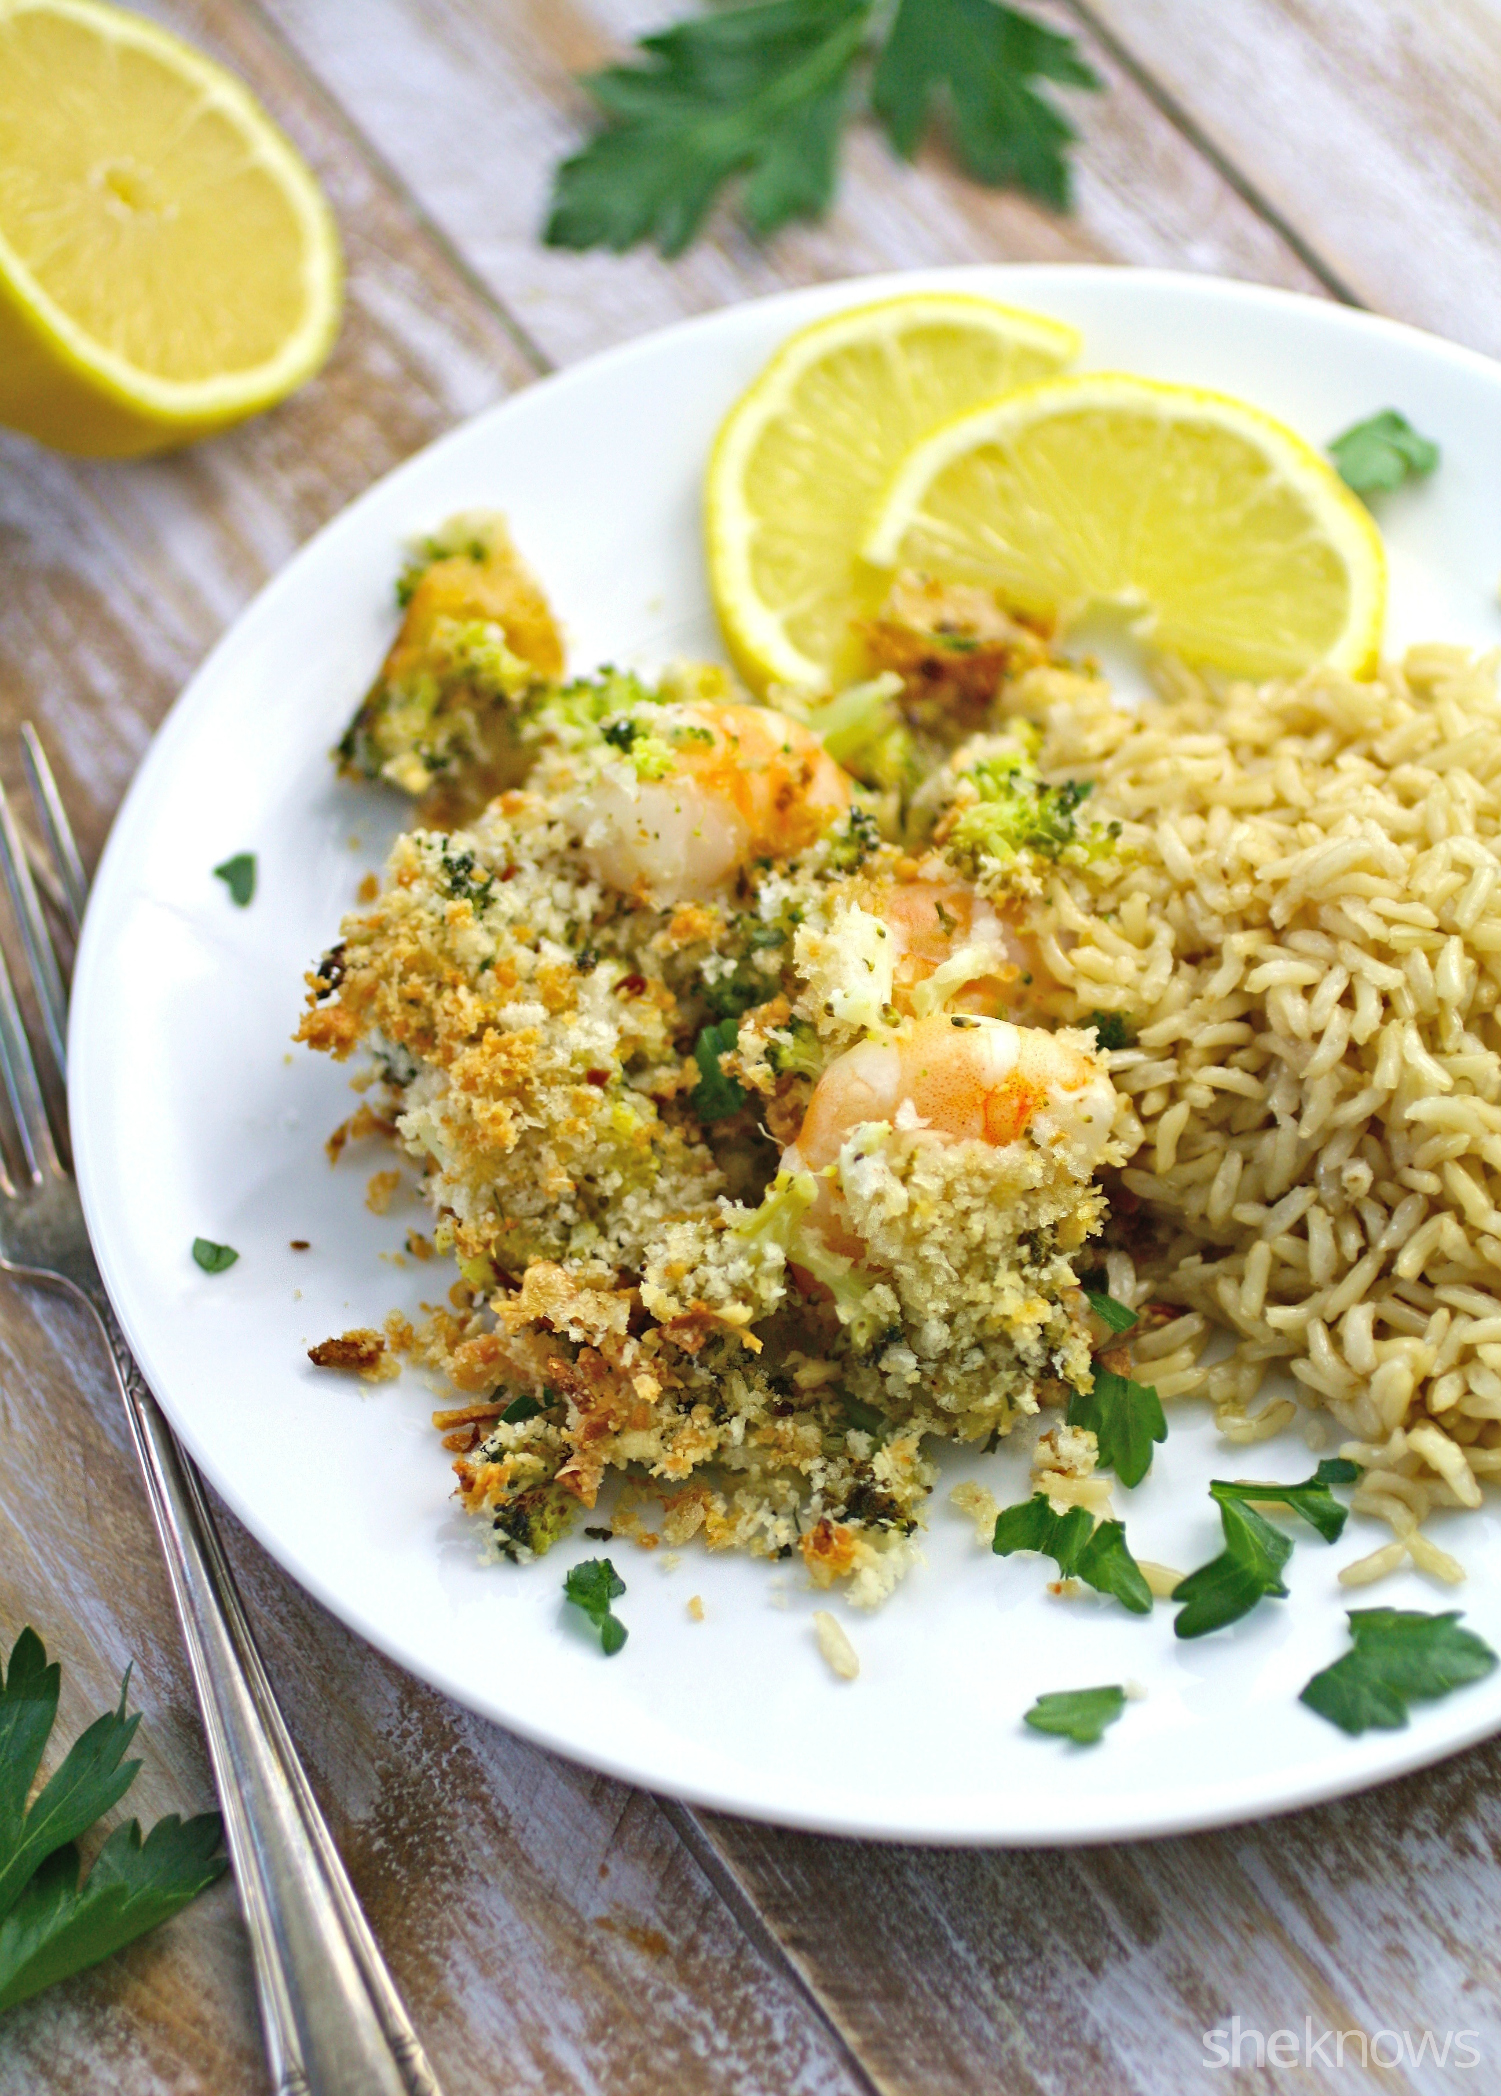 Shrimp scampi bake with lemon-chile panko goes nicely with rice